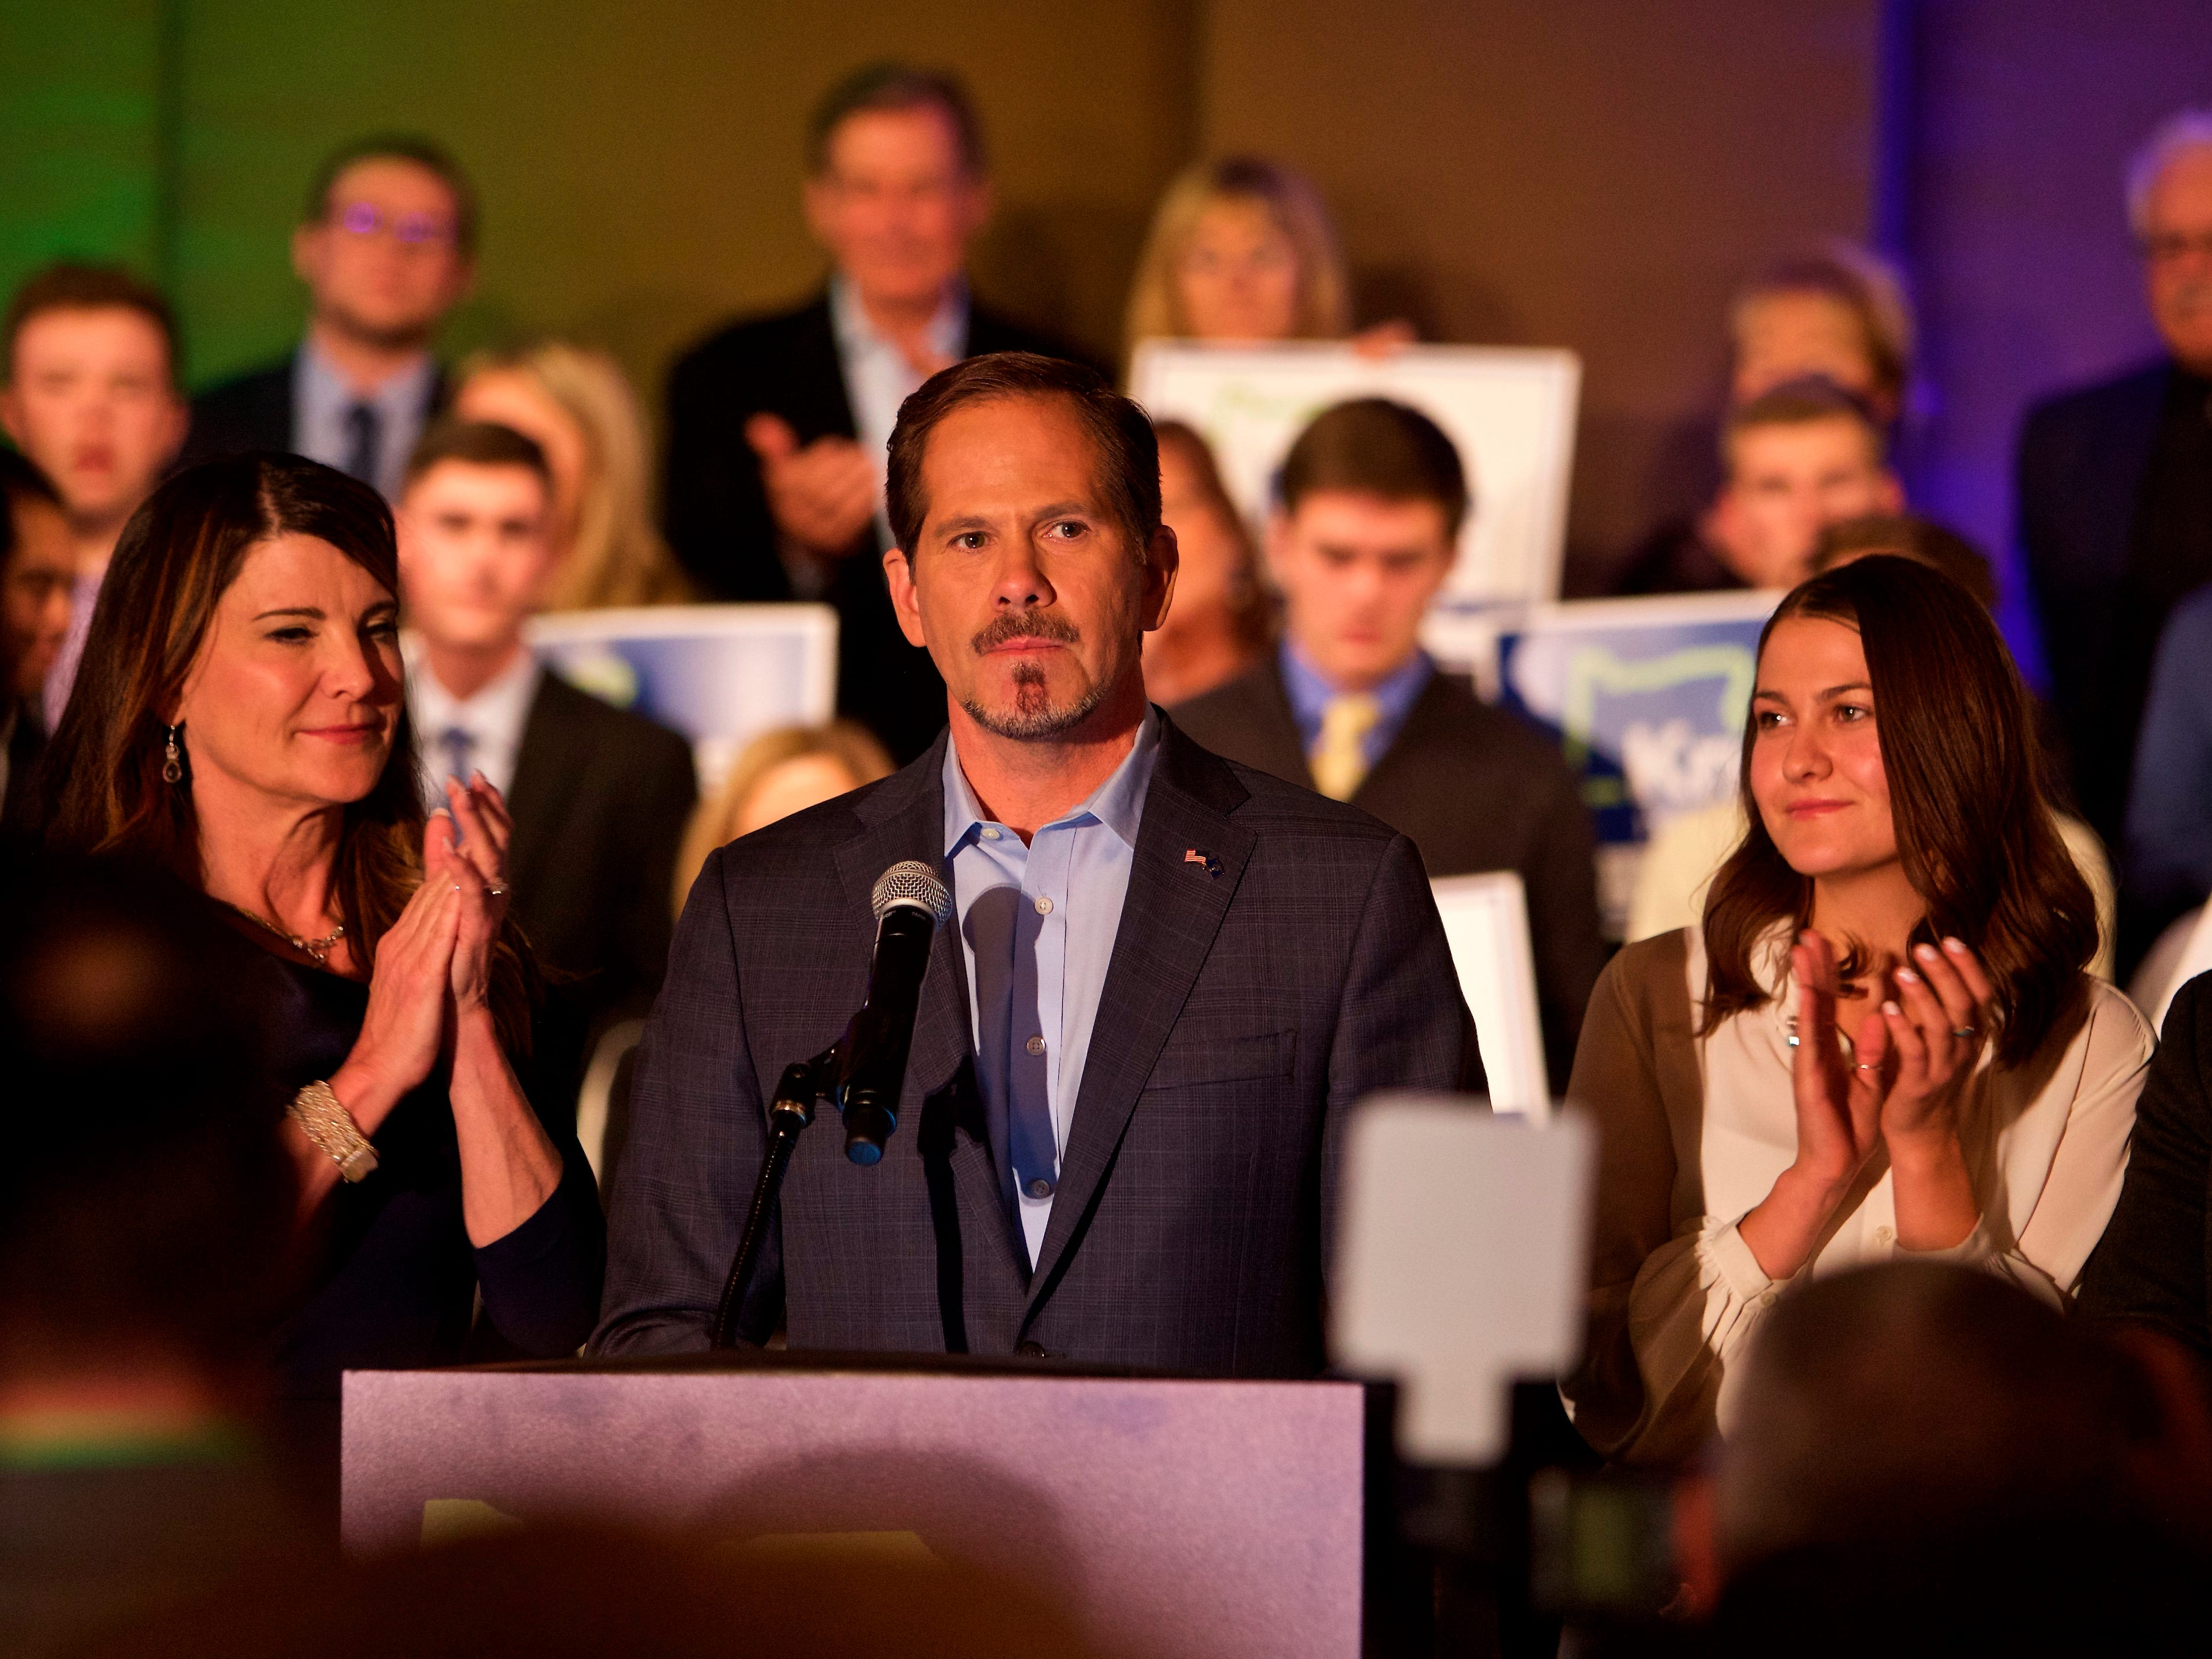 Republican gubernatorial candidate Knute Buehler gives a concession speech to supporters in Portland, Ore., Tuesday, November 6, 2018.